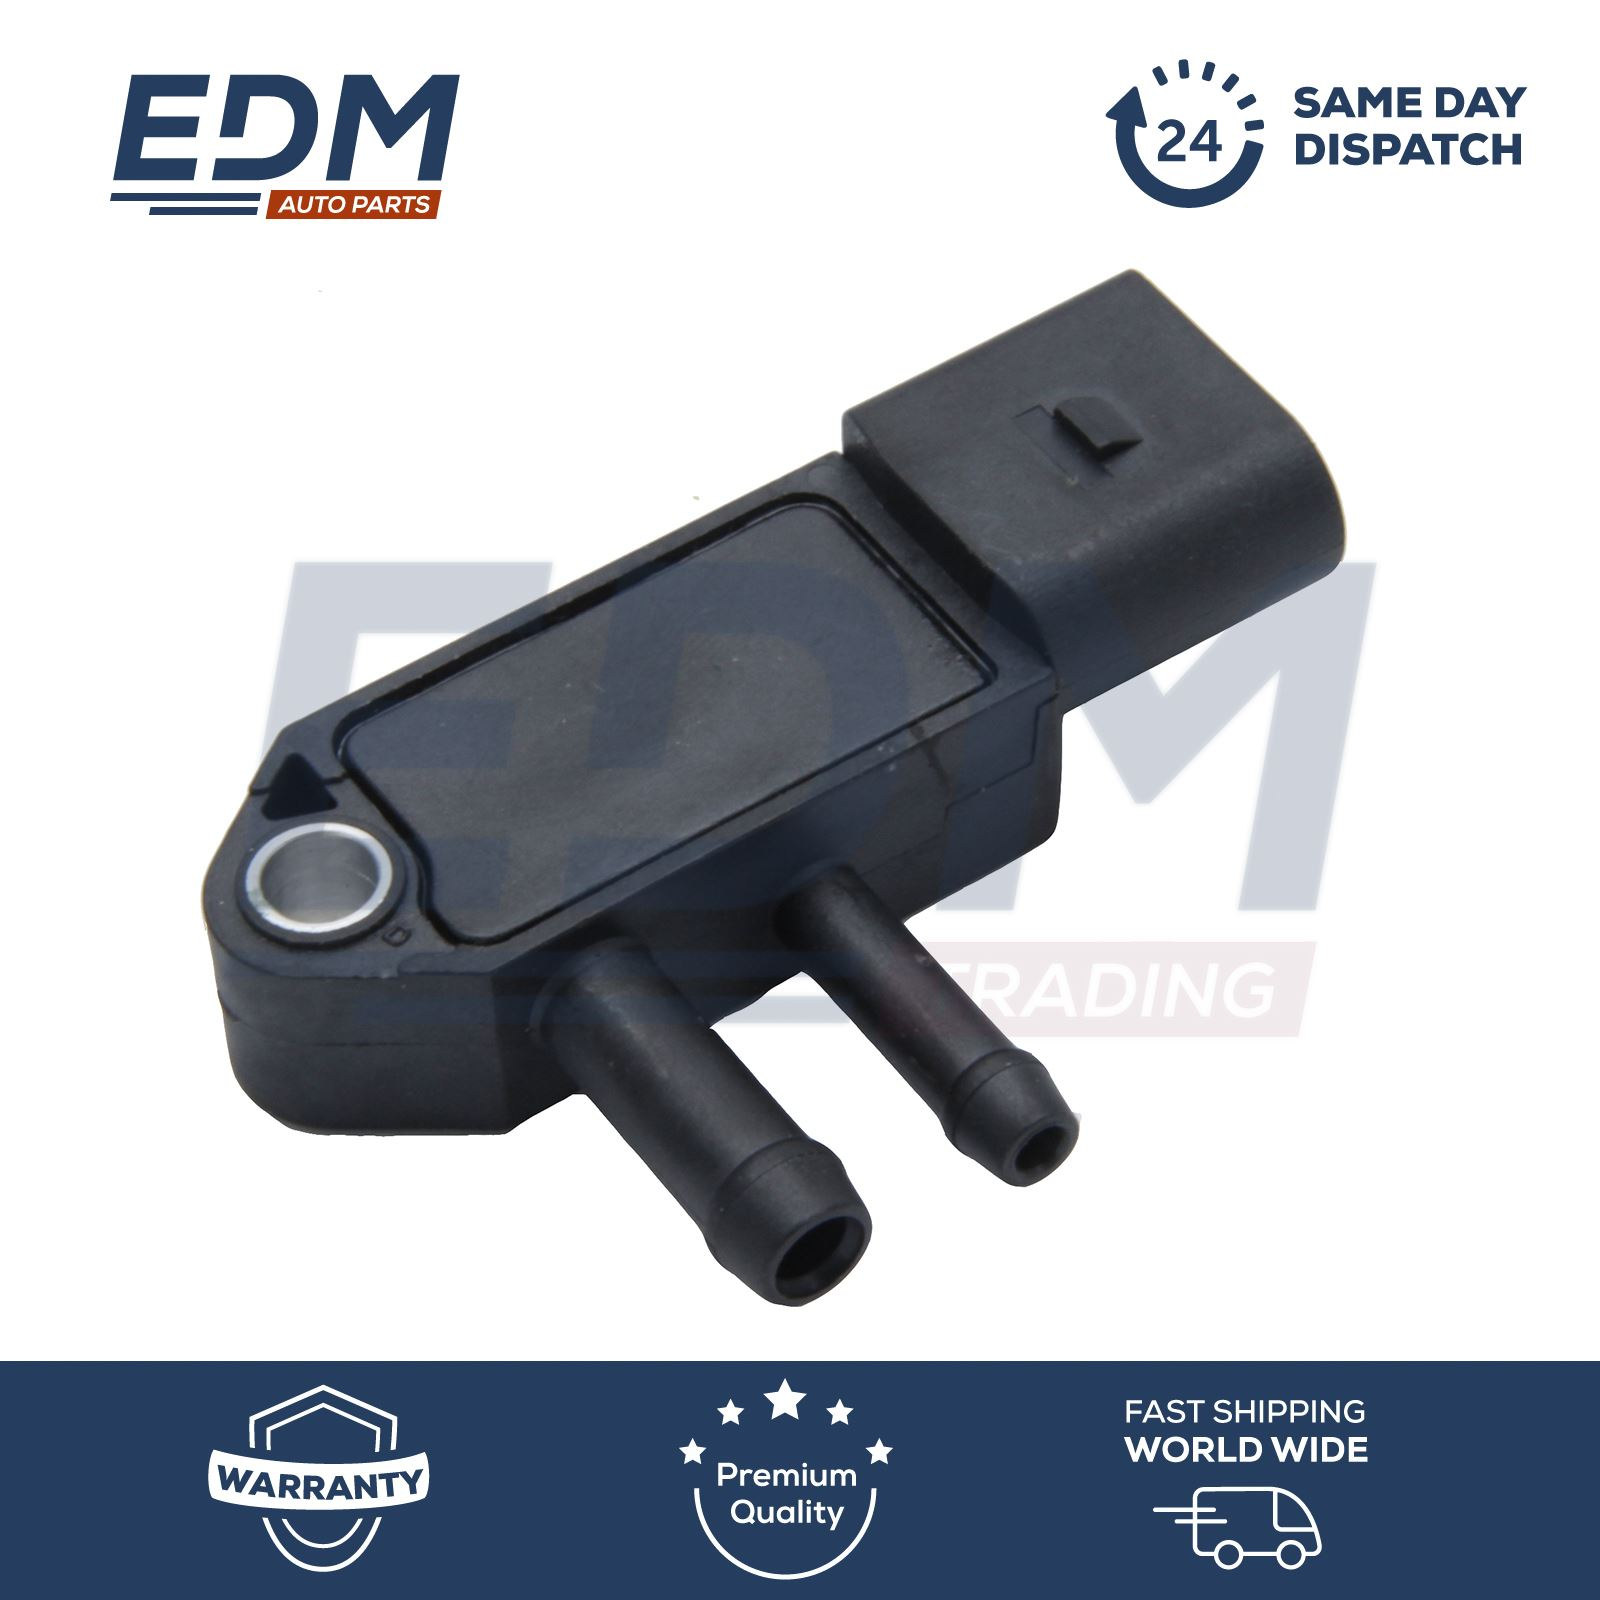 Differential Pressure Sensor Diesel Particulate Filter for Audi VW Replace OE# 076906051A 076906051B 076906051C